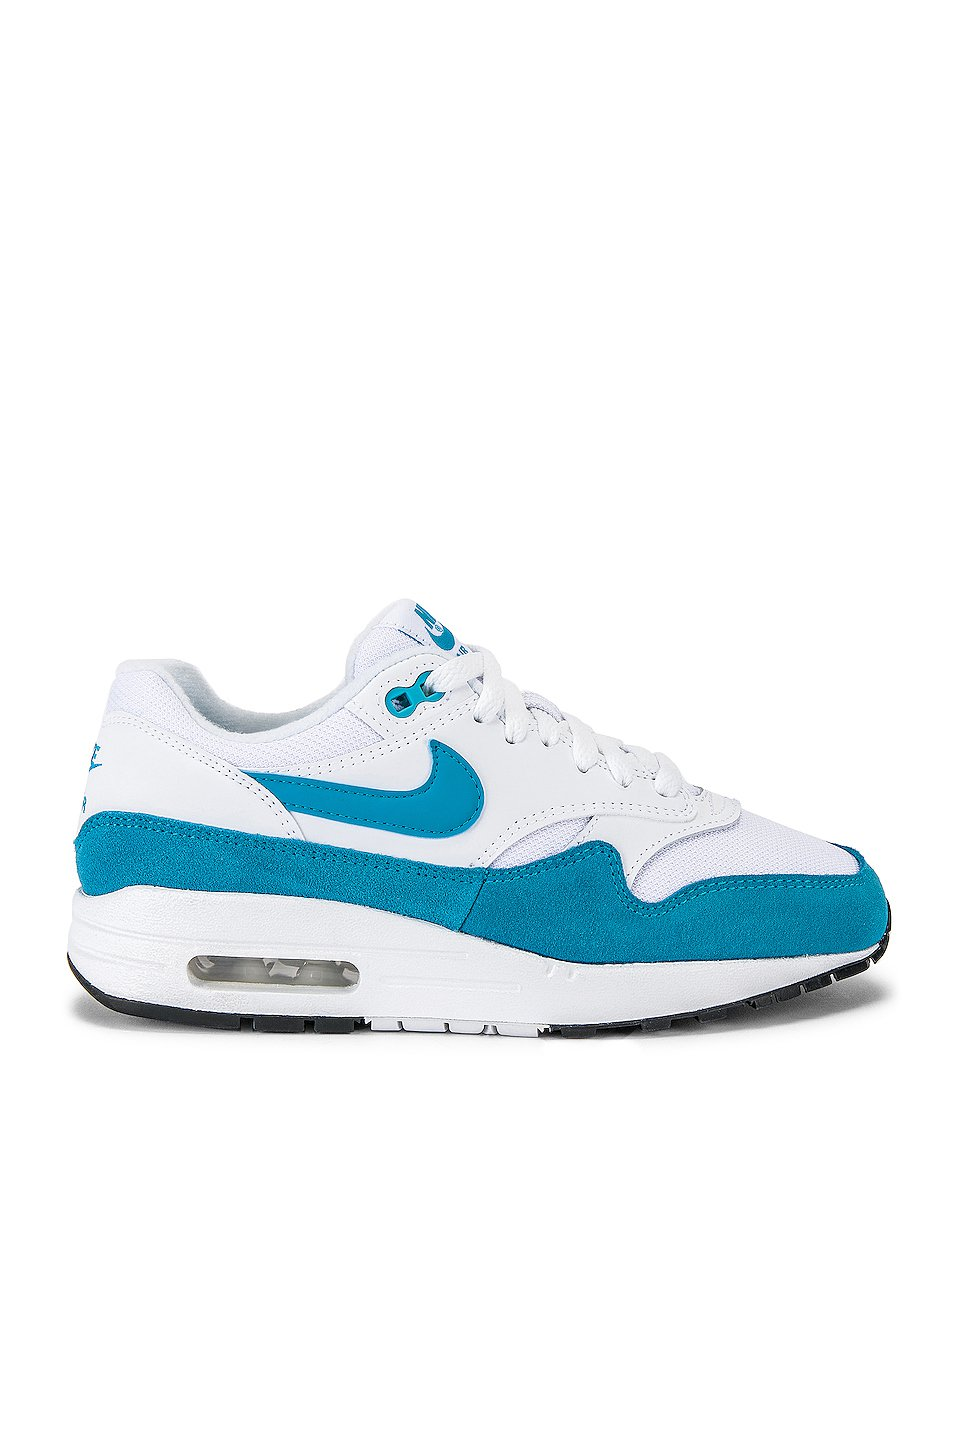 Women's Air Max 1 Sneaker in White & Blue